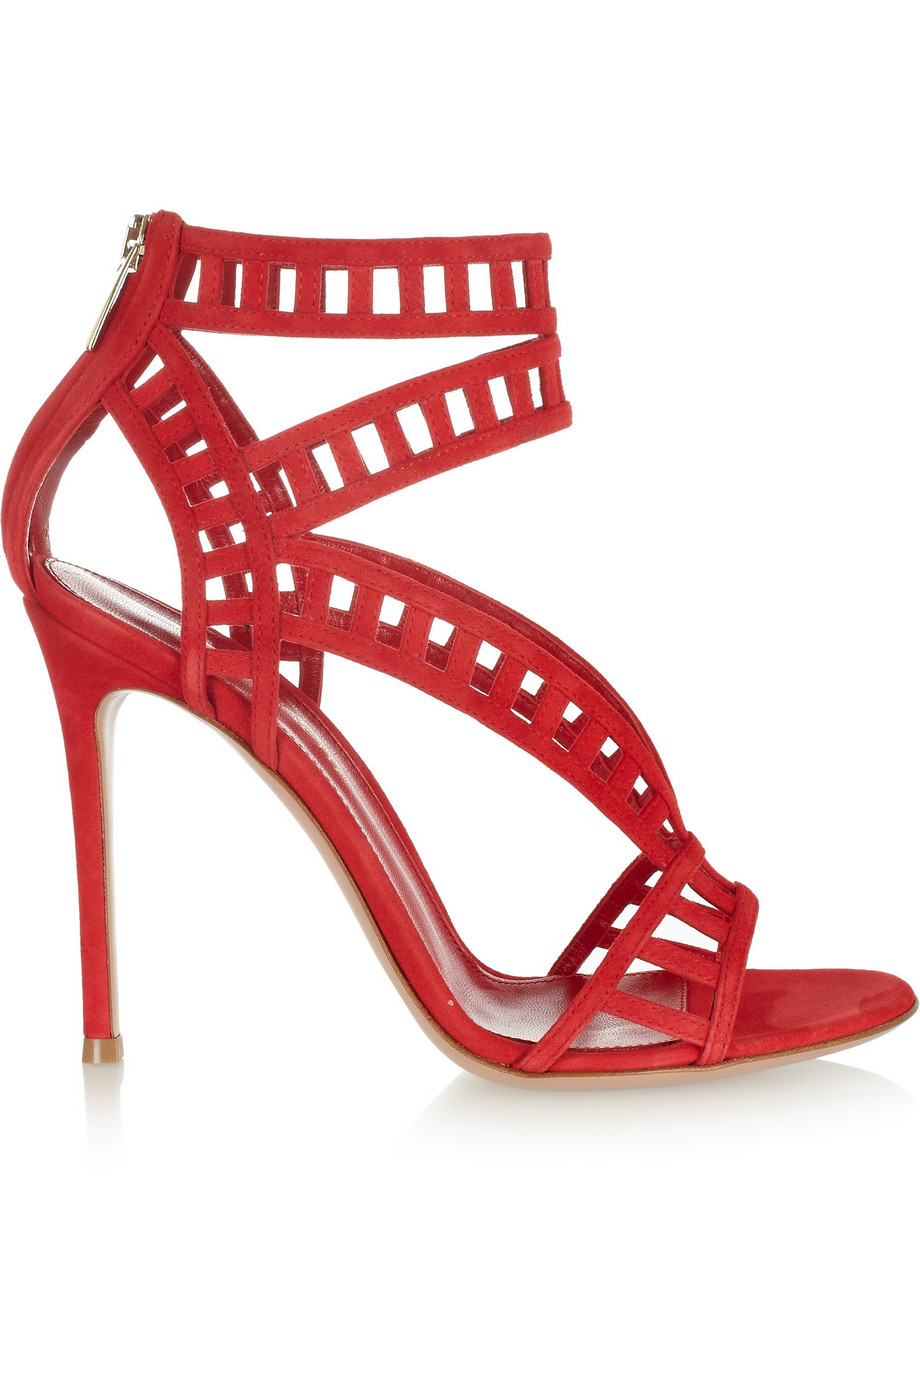 5d4c801d4505 Today s So Shoe Me is the Cutout Suede Sandals by Gianvito Rossi